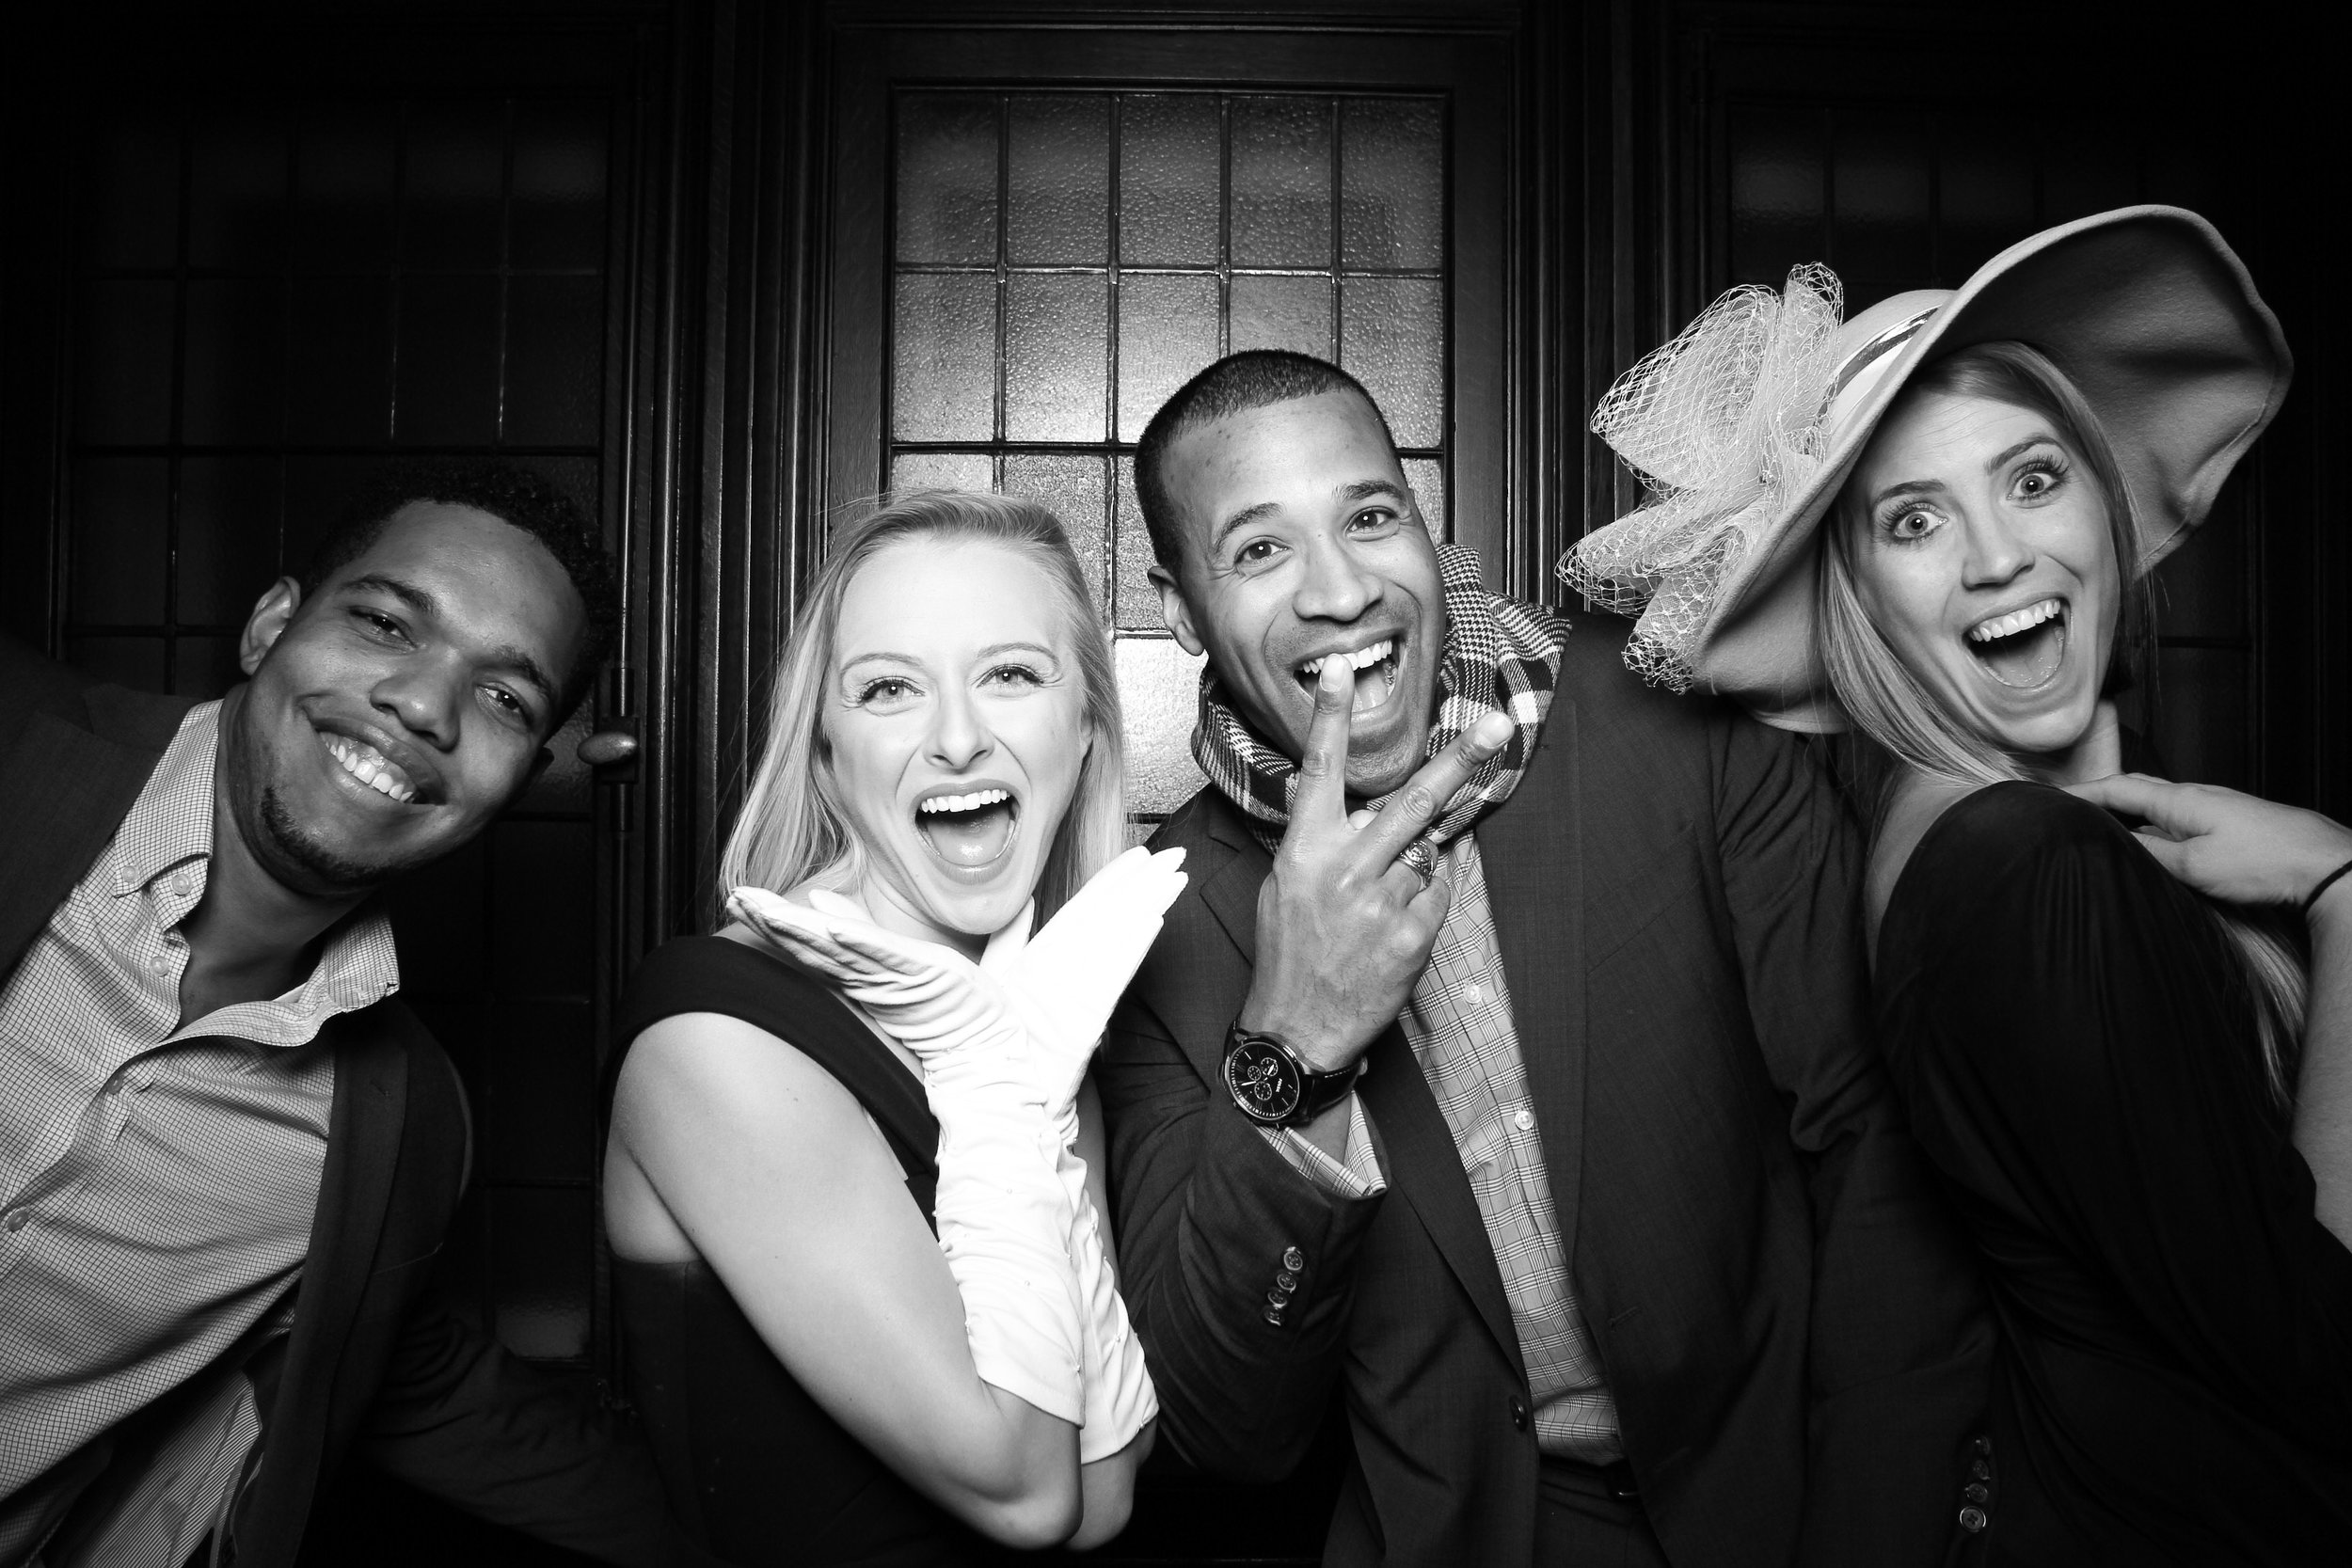 Chicago_Vintage_Photobooth_Holiday_Party_University_Club_09.jpg